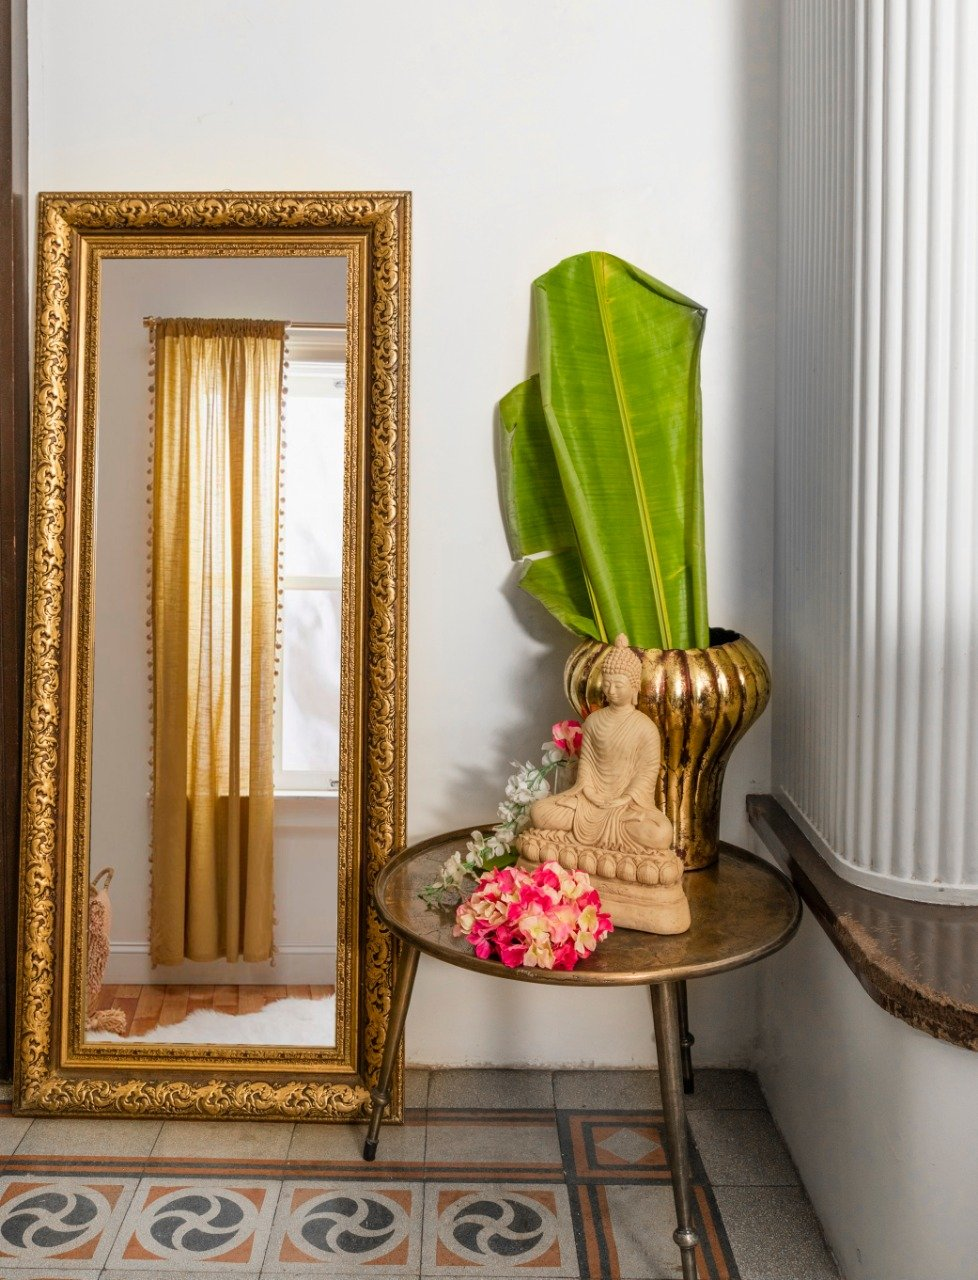 A Wall Mirror with a Metal Frame with details depicting antique carvings in an antique gold finish at an amazing price!